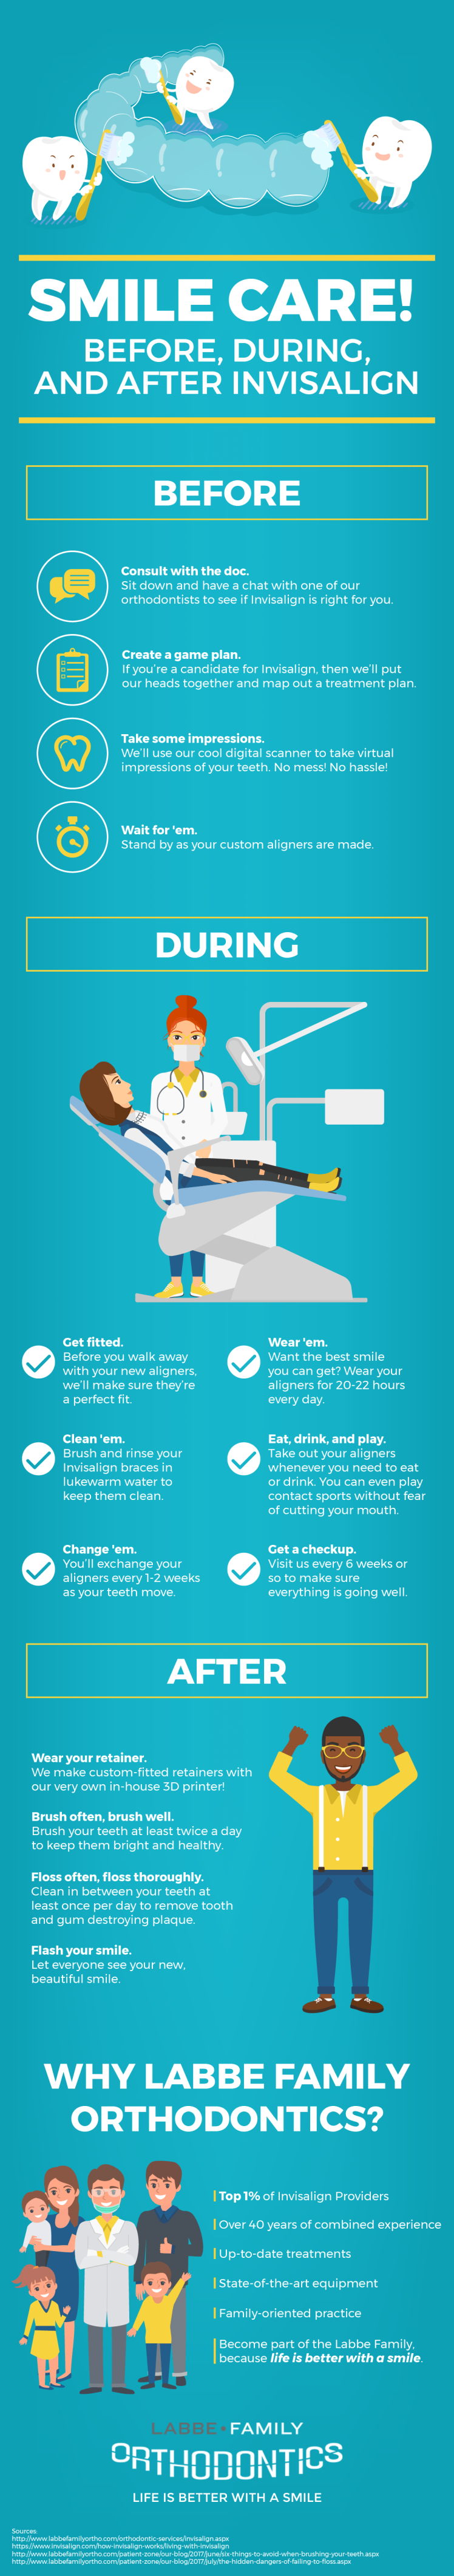 Before, During and After Invisalign Infographic